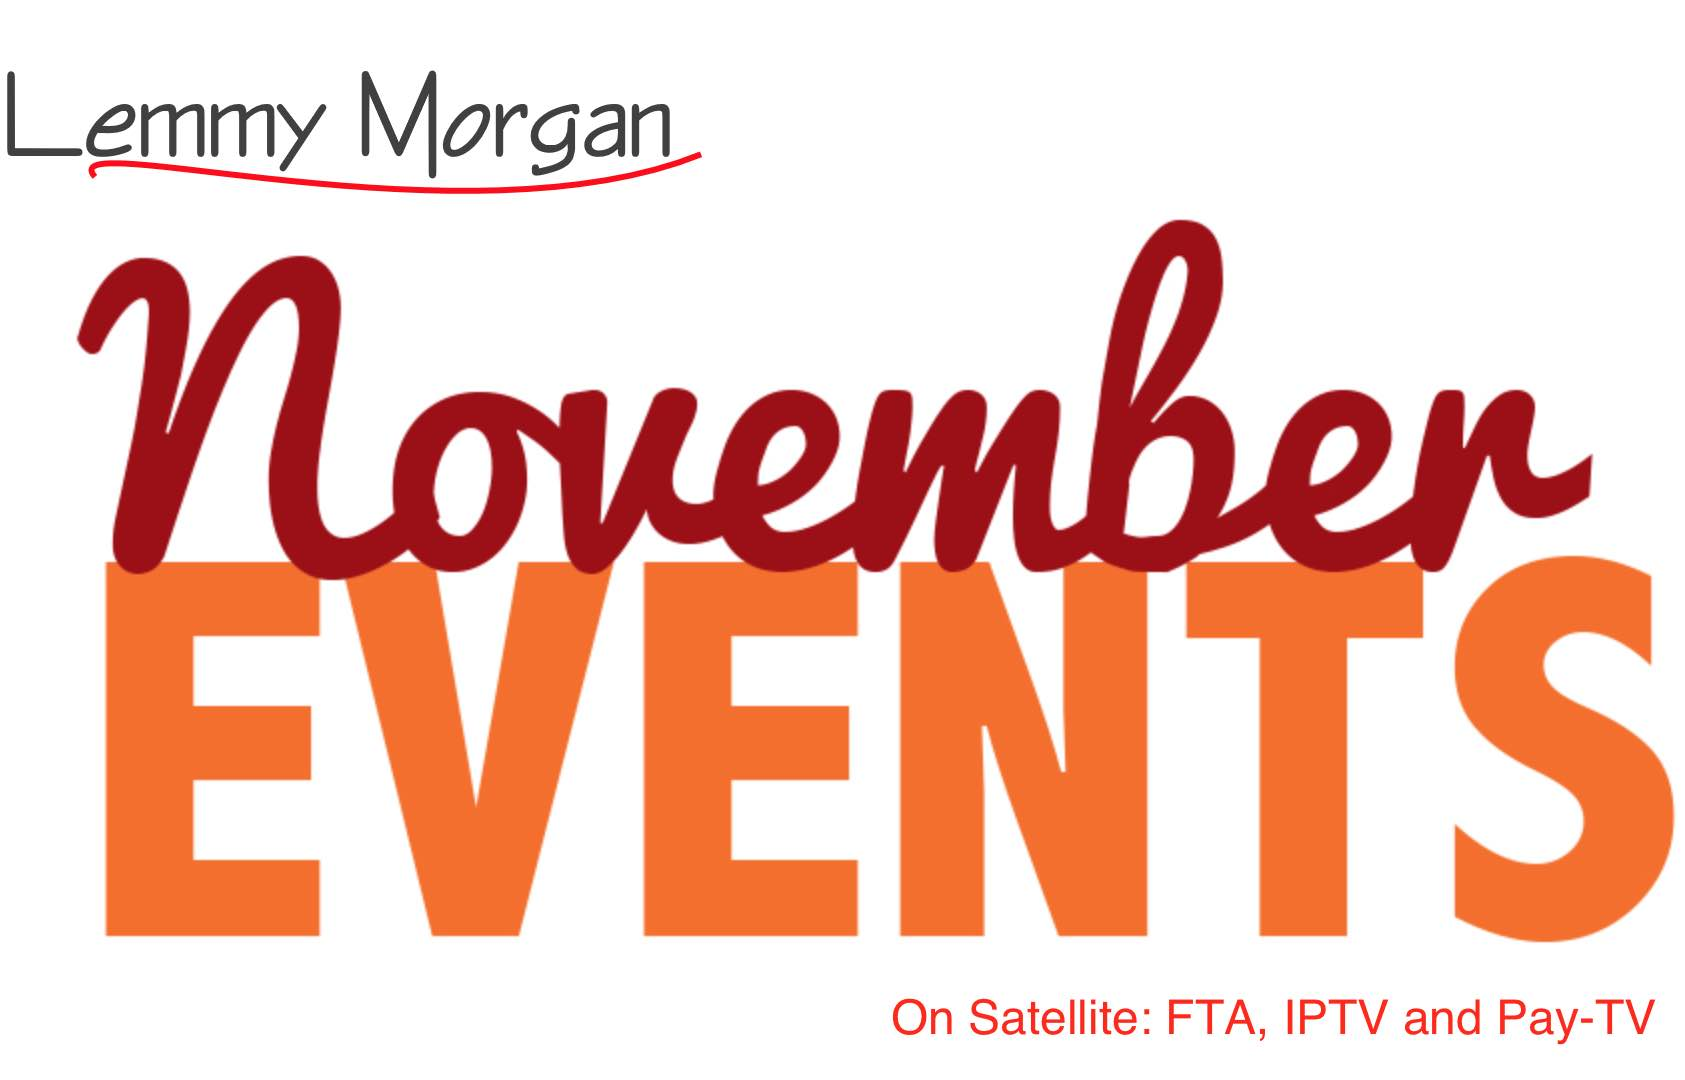 Lemmy Morgan November 2018 Update on Satellite TV, FTA, IPTV, Pay-Tv & Cheap Data